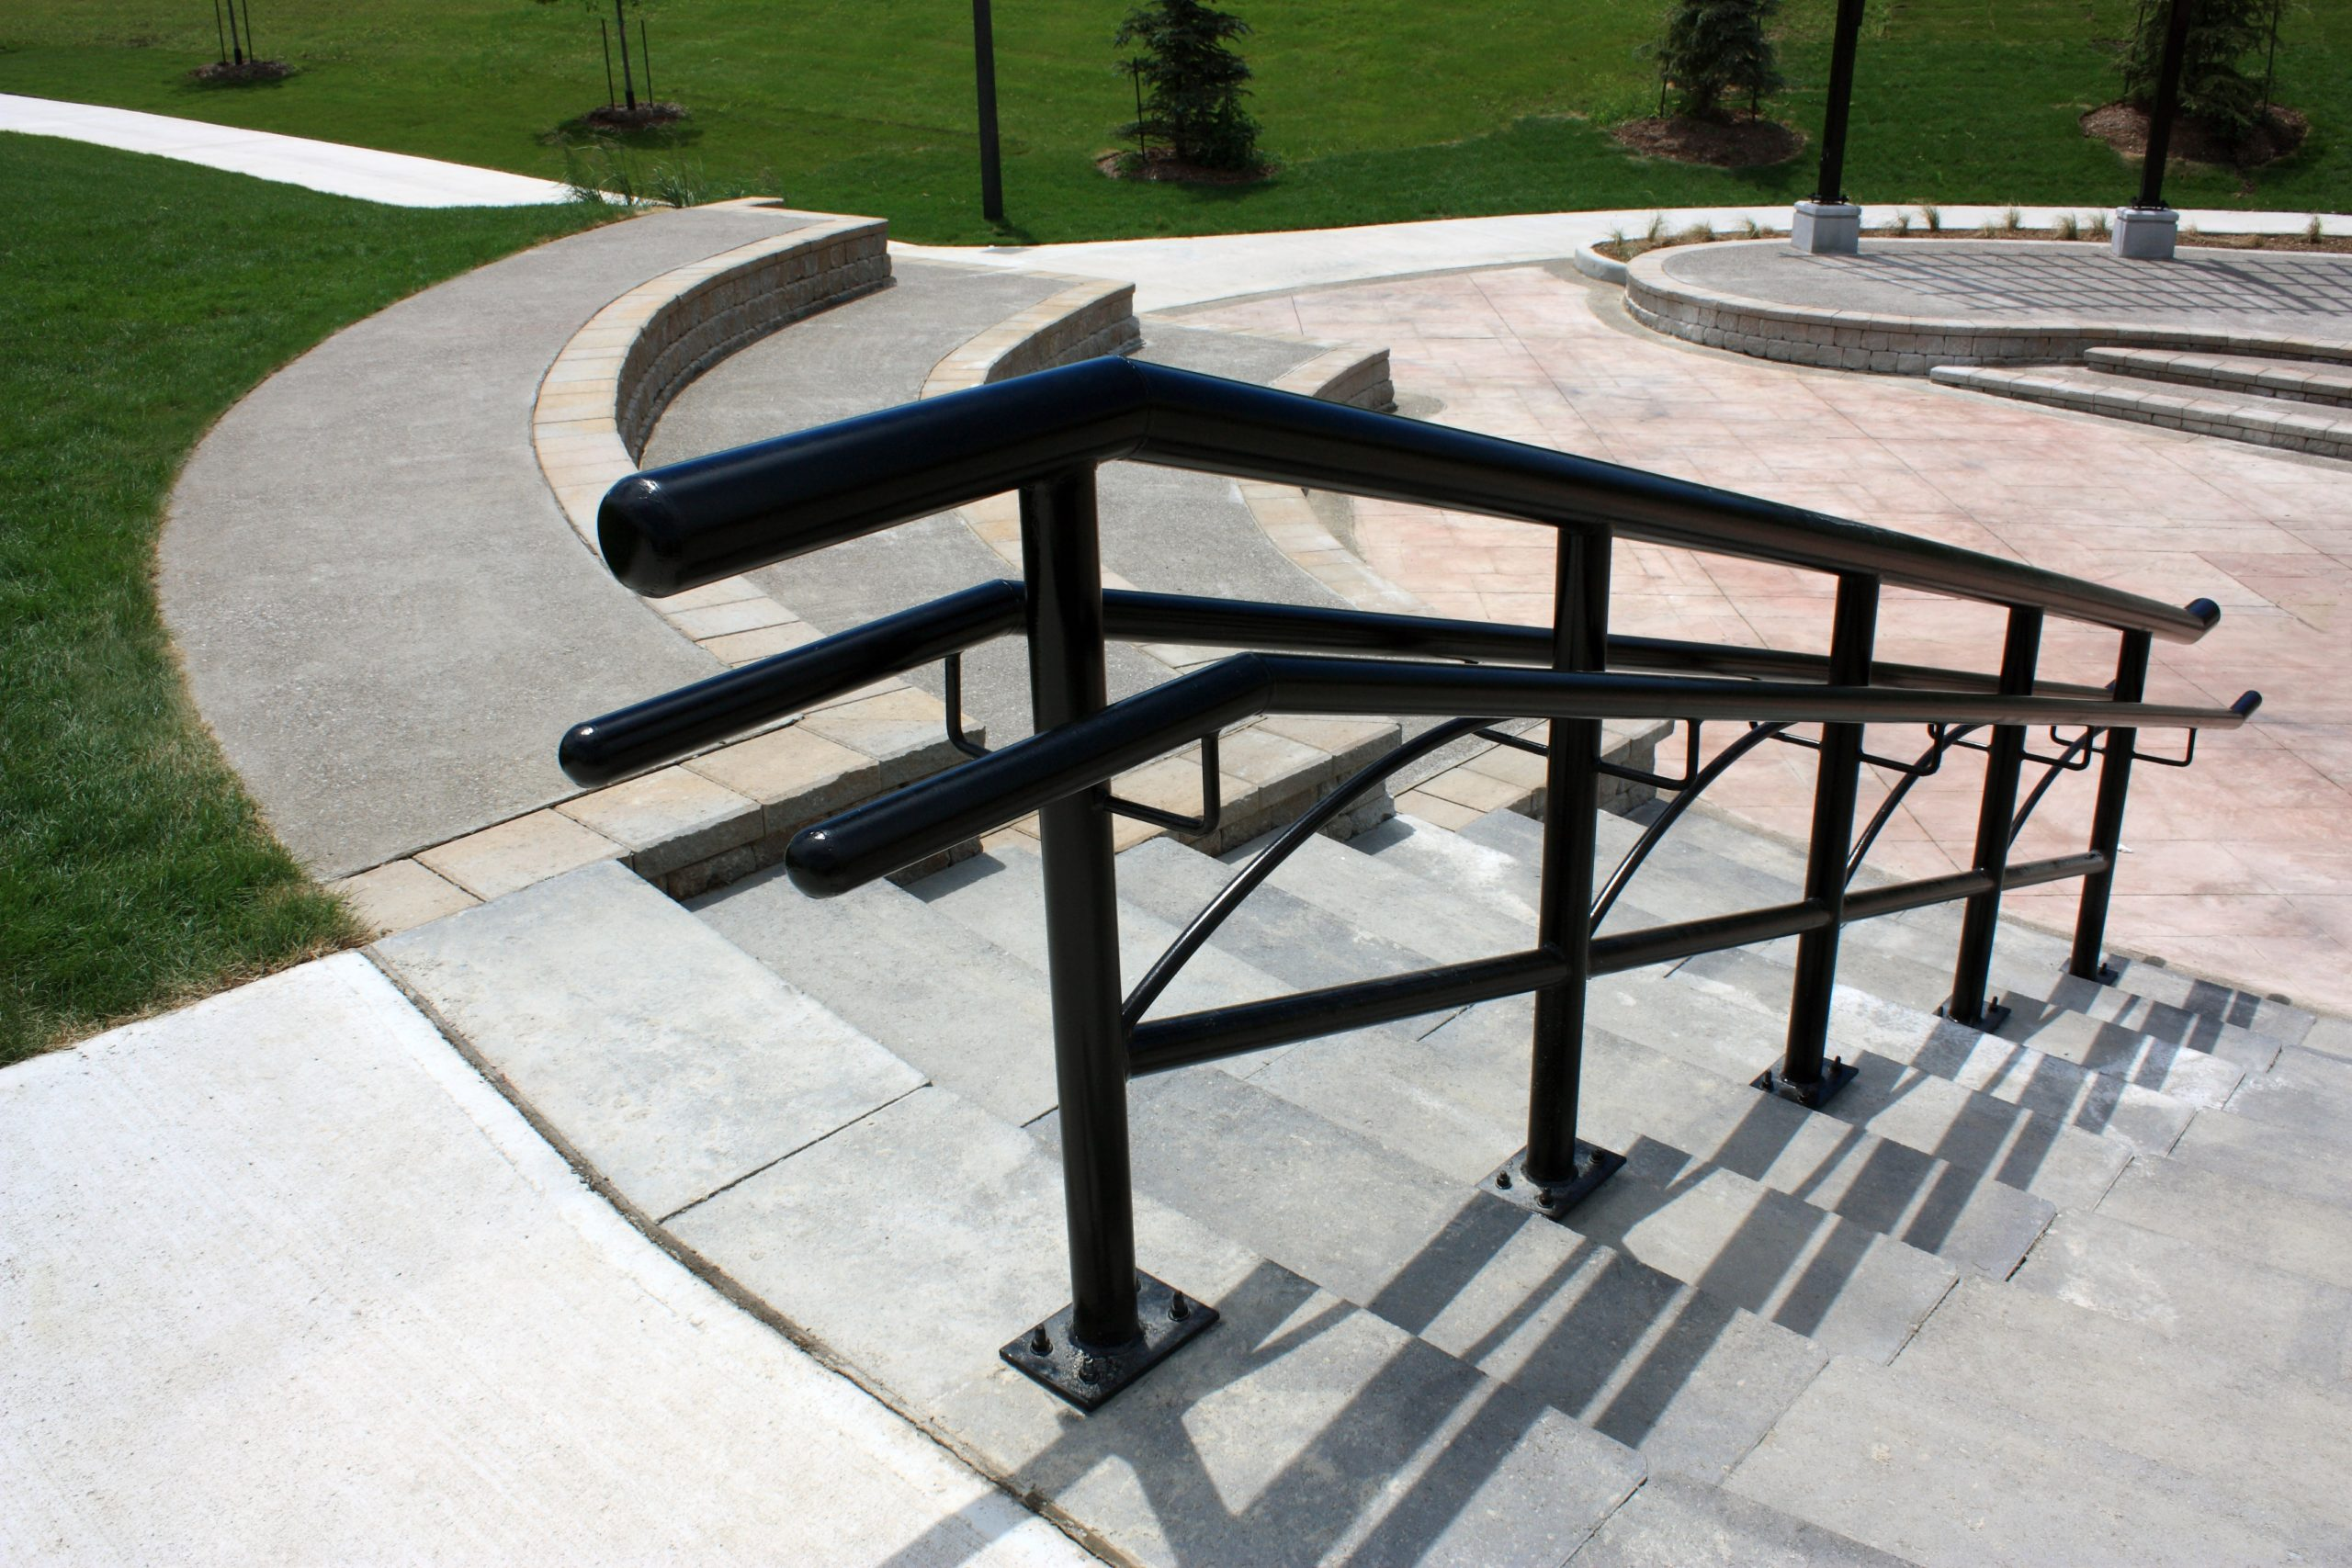 Stone staircase with metal handrail